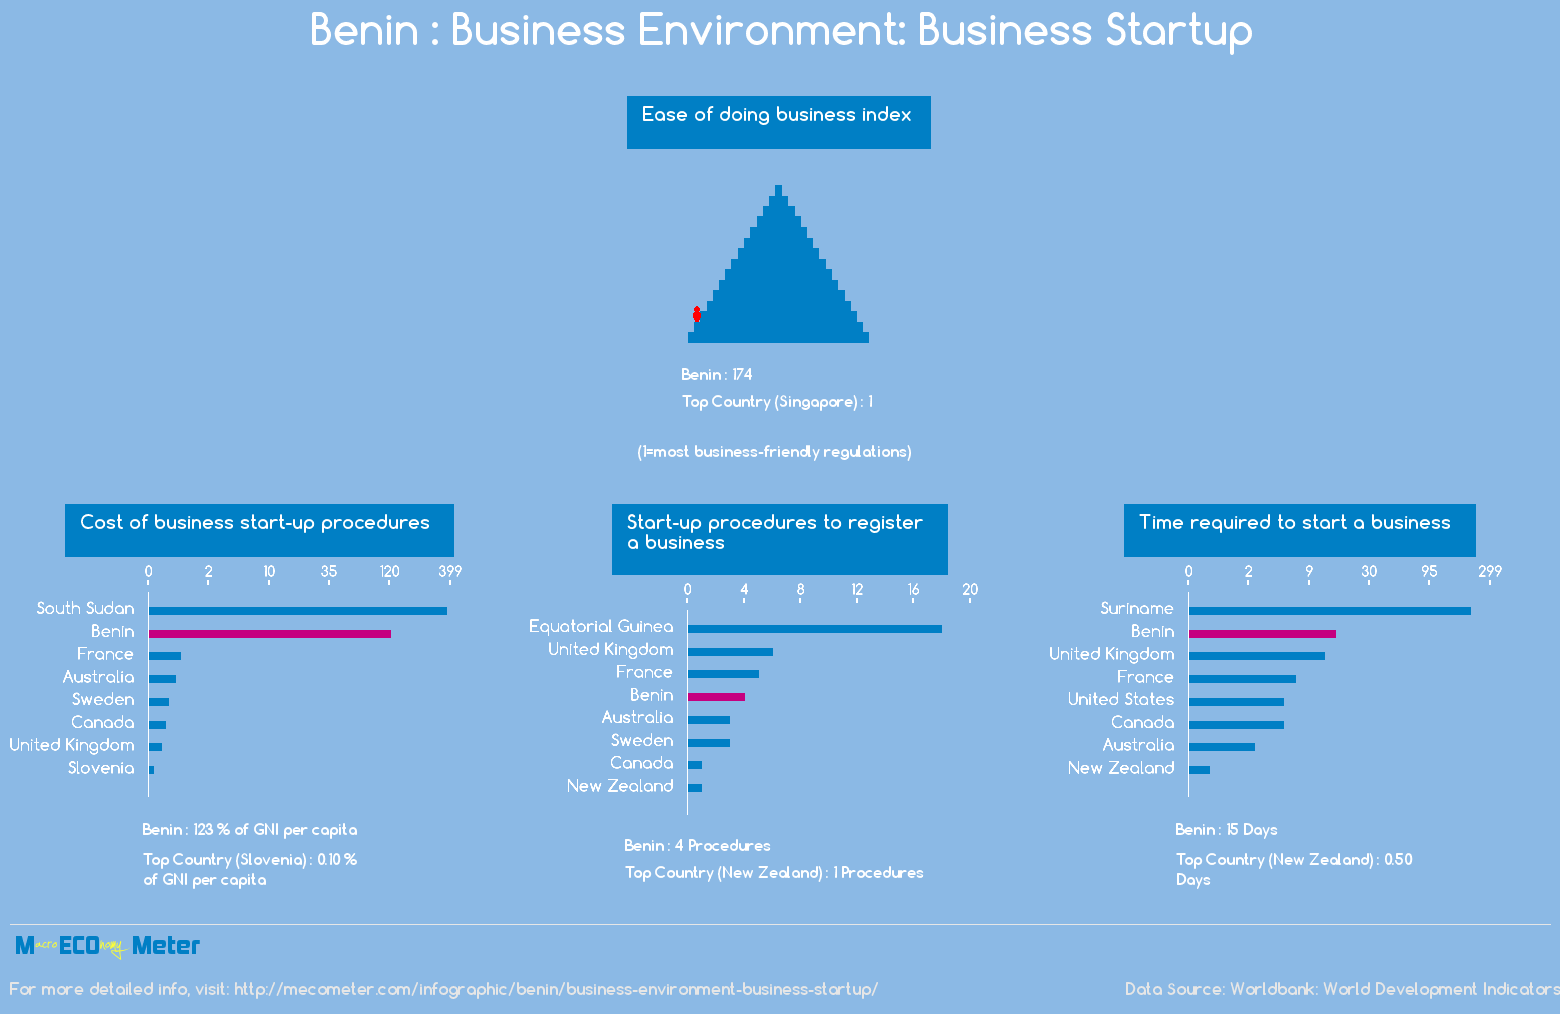 Benin : Business Environment: Business Startup